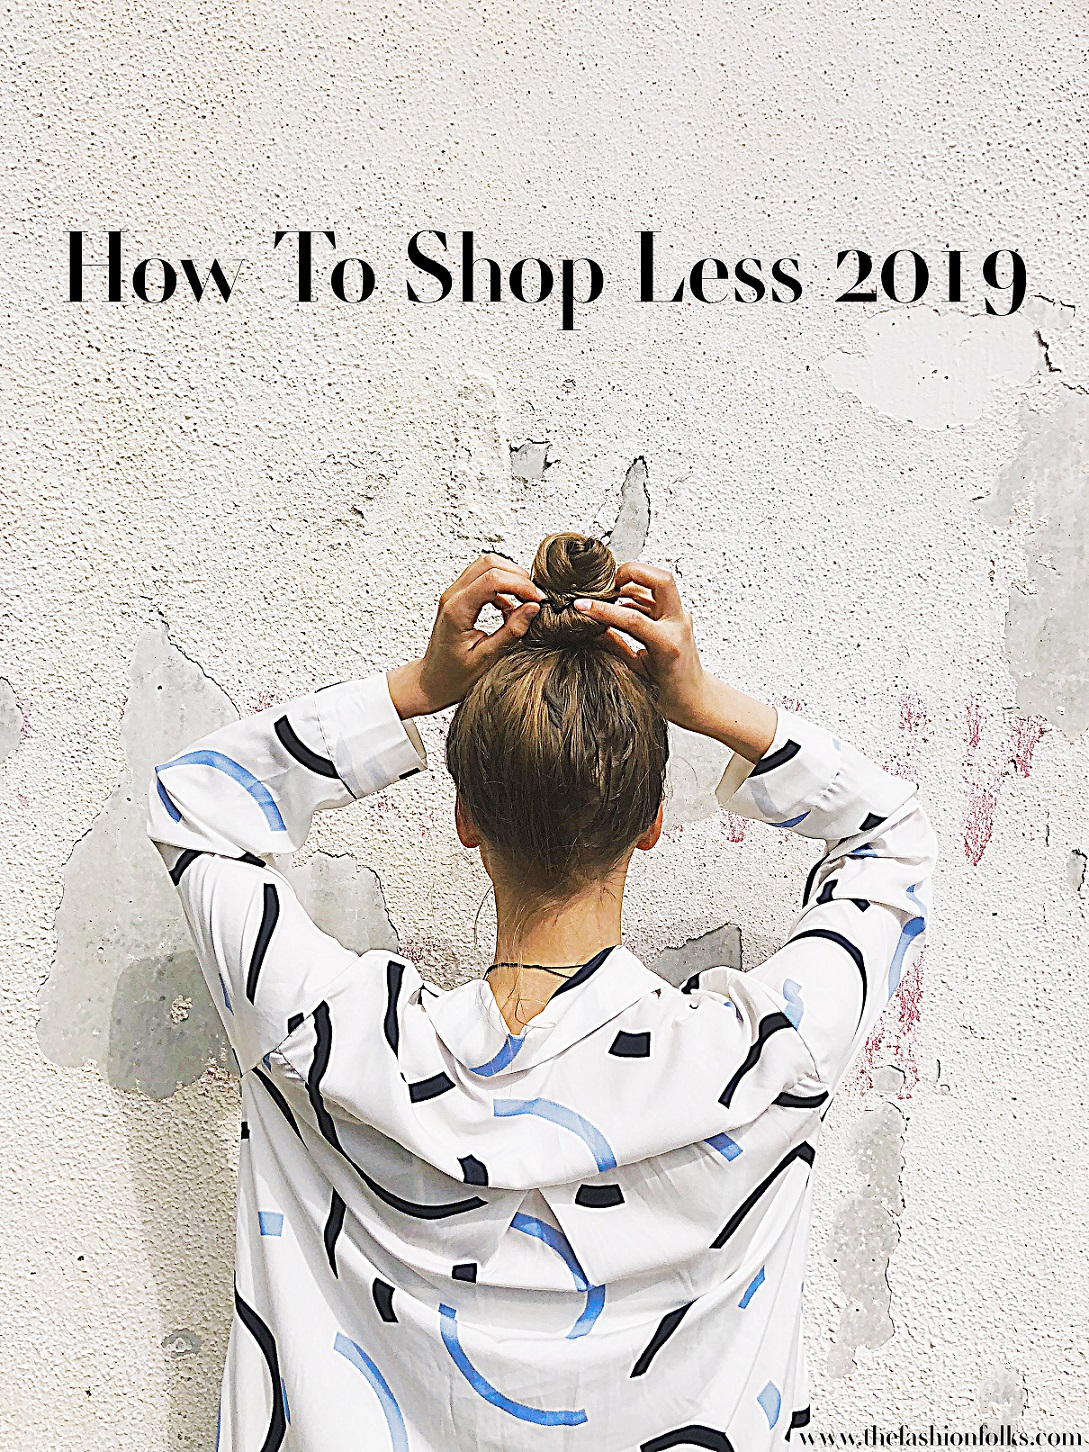 How To Shop Less 2019